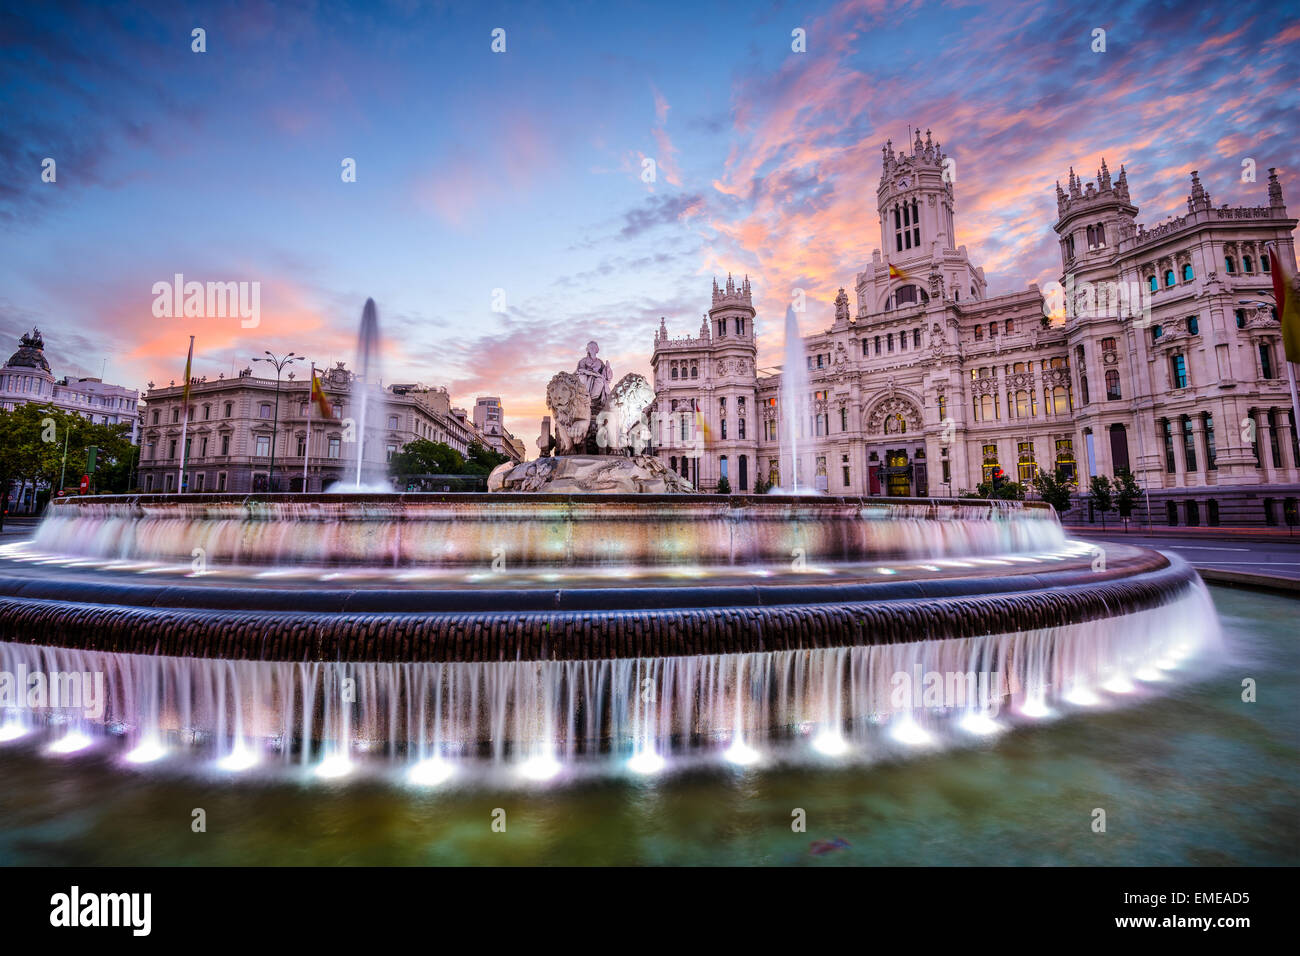 Madrid, Spanien am Plaza de Cibeles. Stockbild